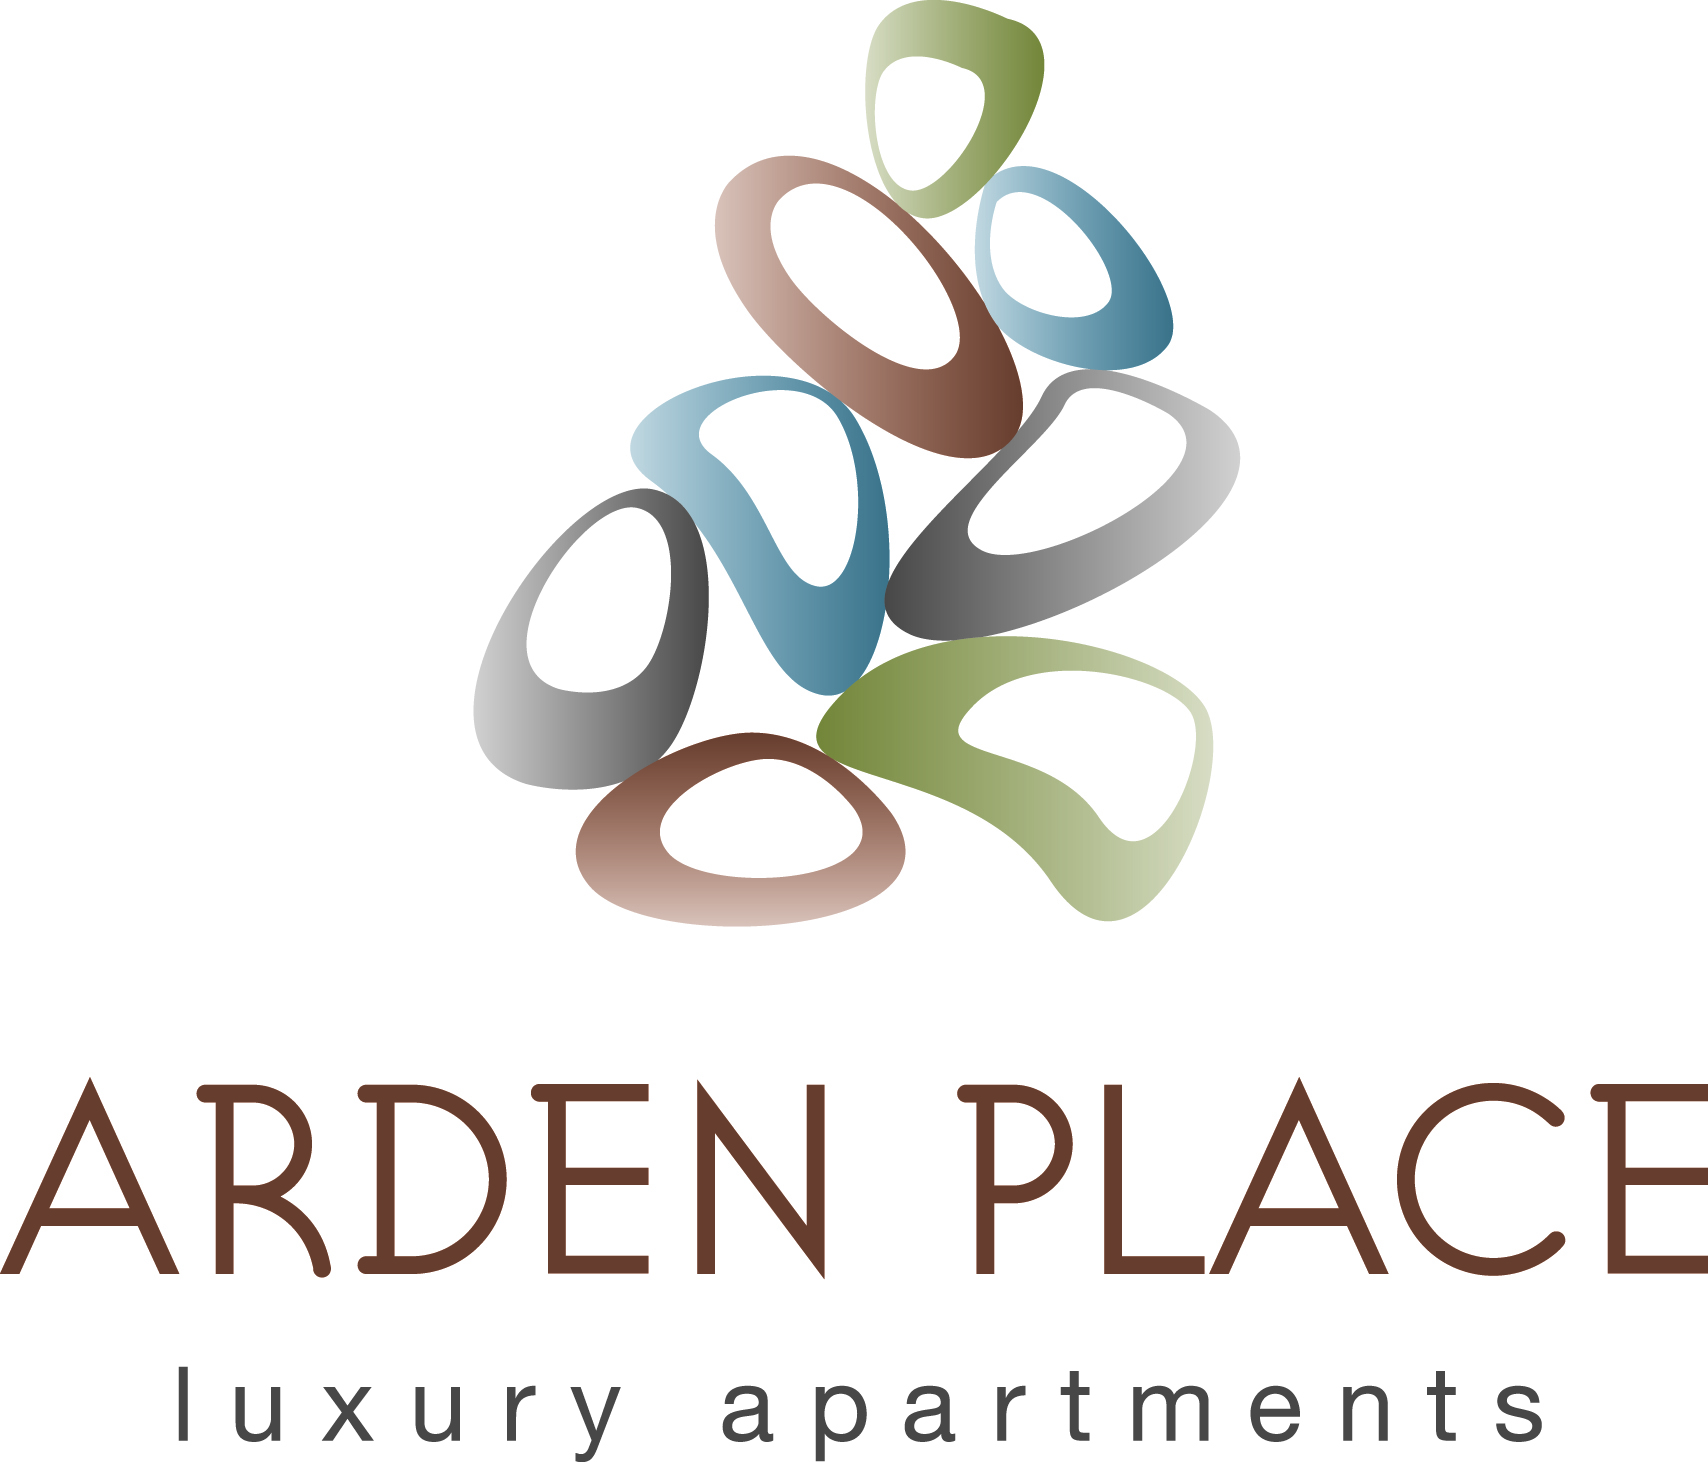 ArdenPlace_logo_color_4cp.jpg